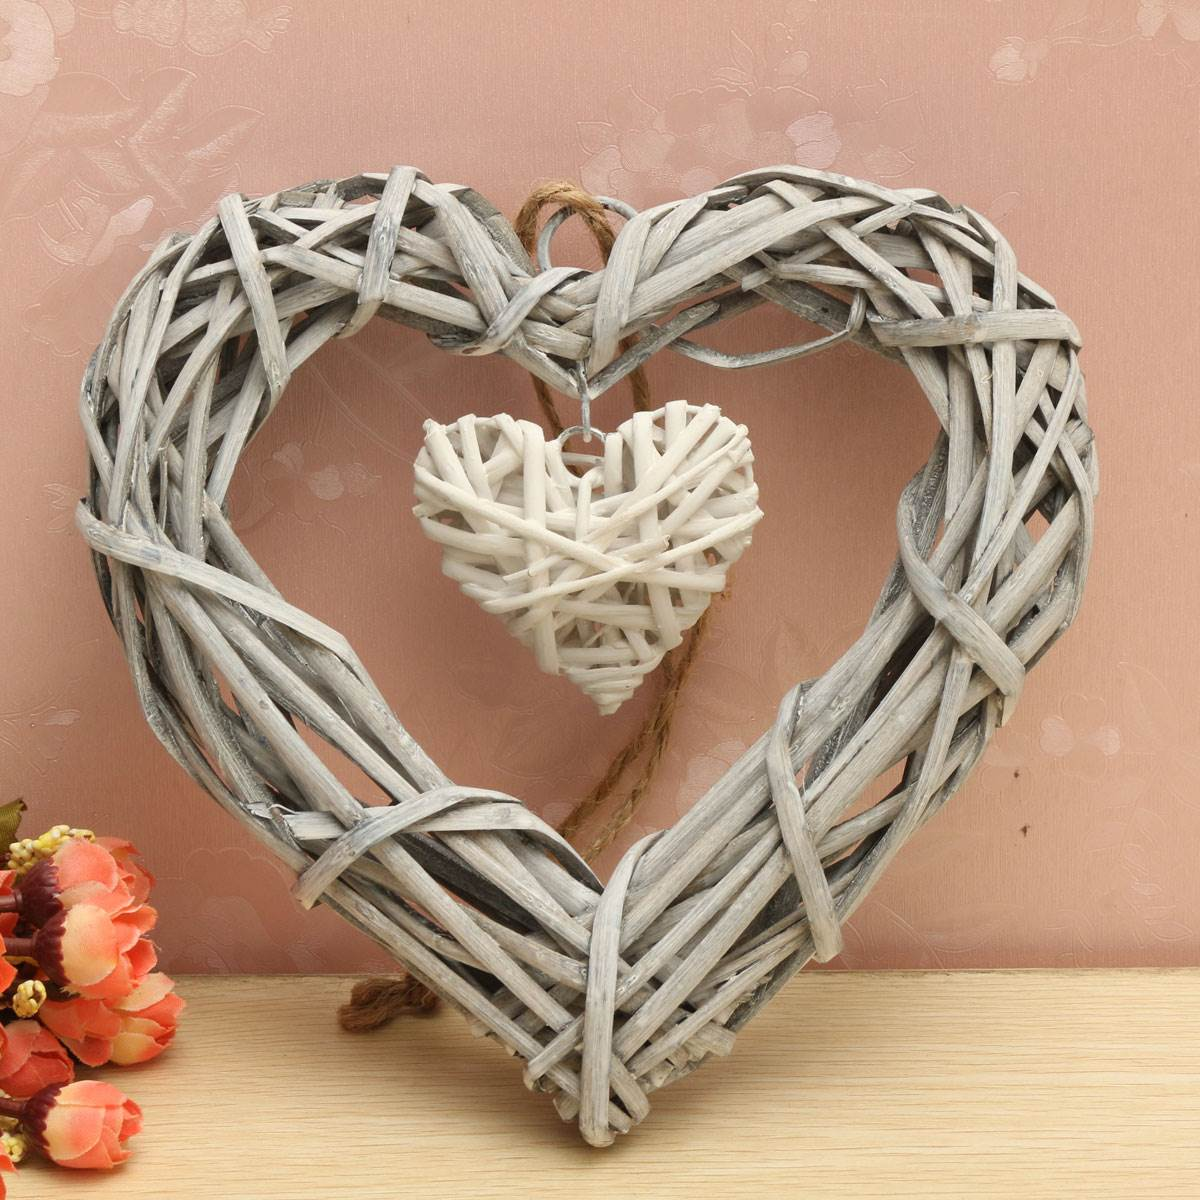 wicker hanging heart in grey white wreath color rattan